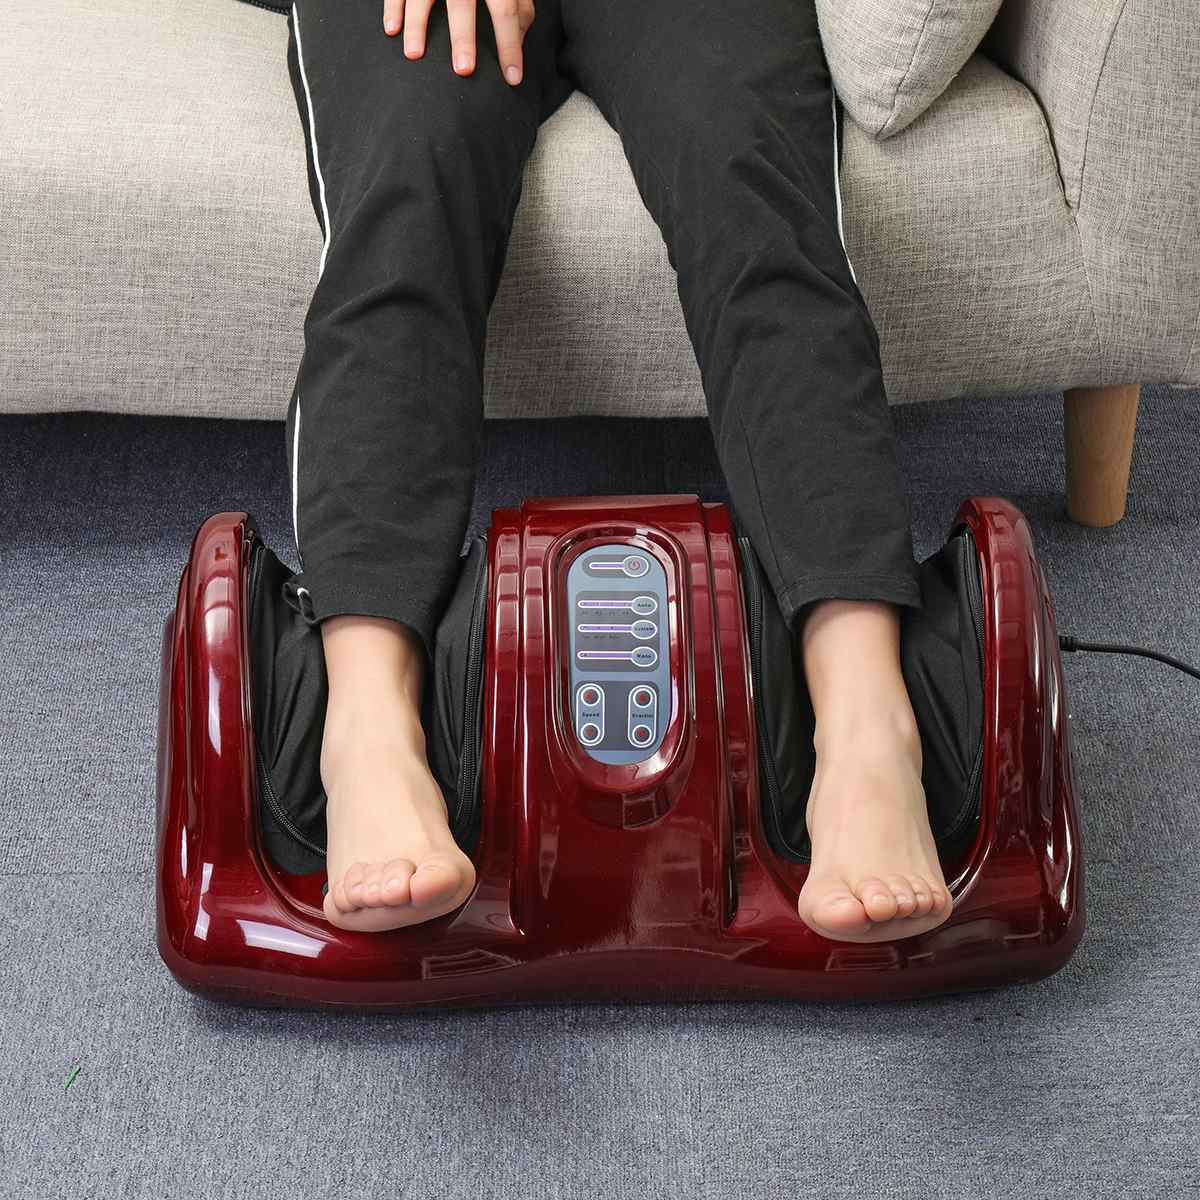 Shiatsu Foot Leg Massager Deep Kneading Electric Spa Massager Machine - Morealis